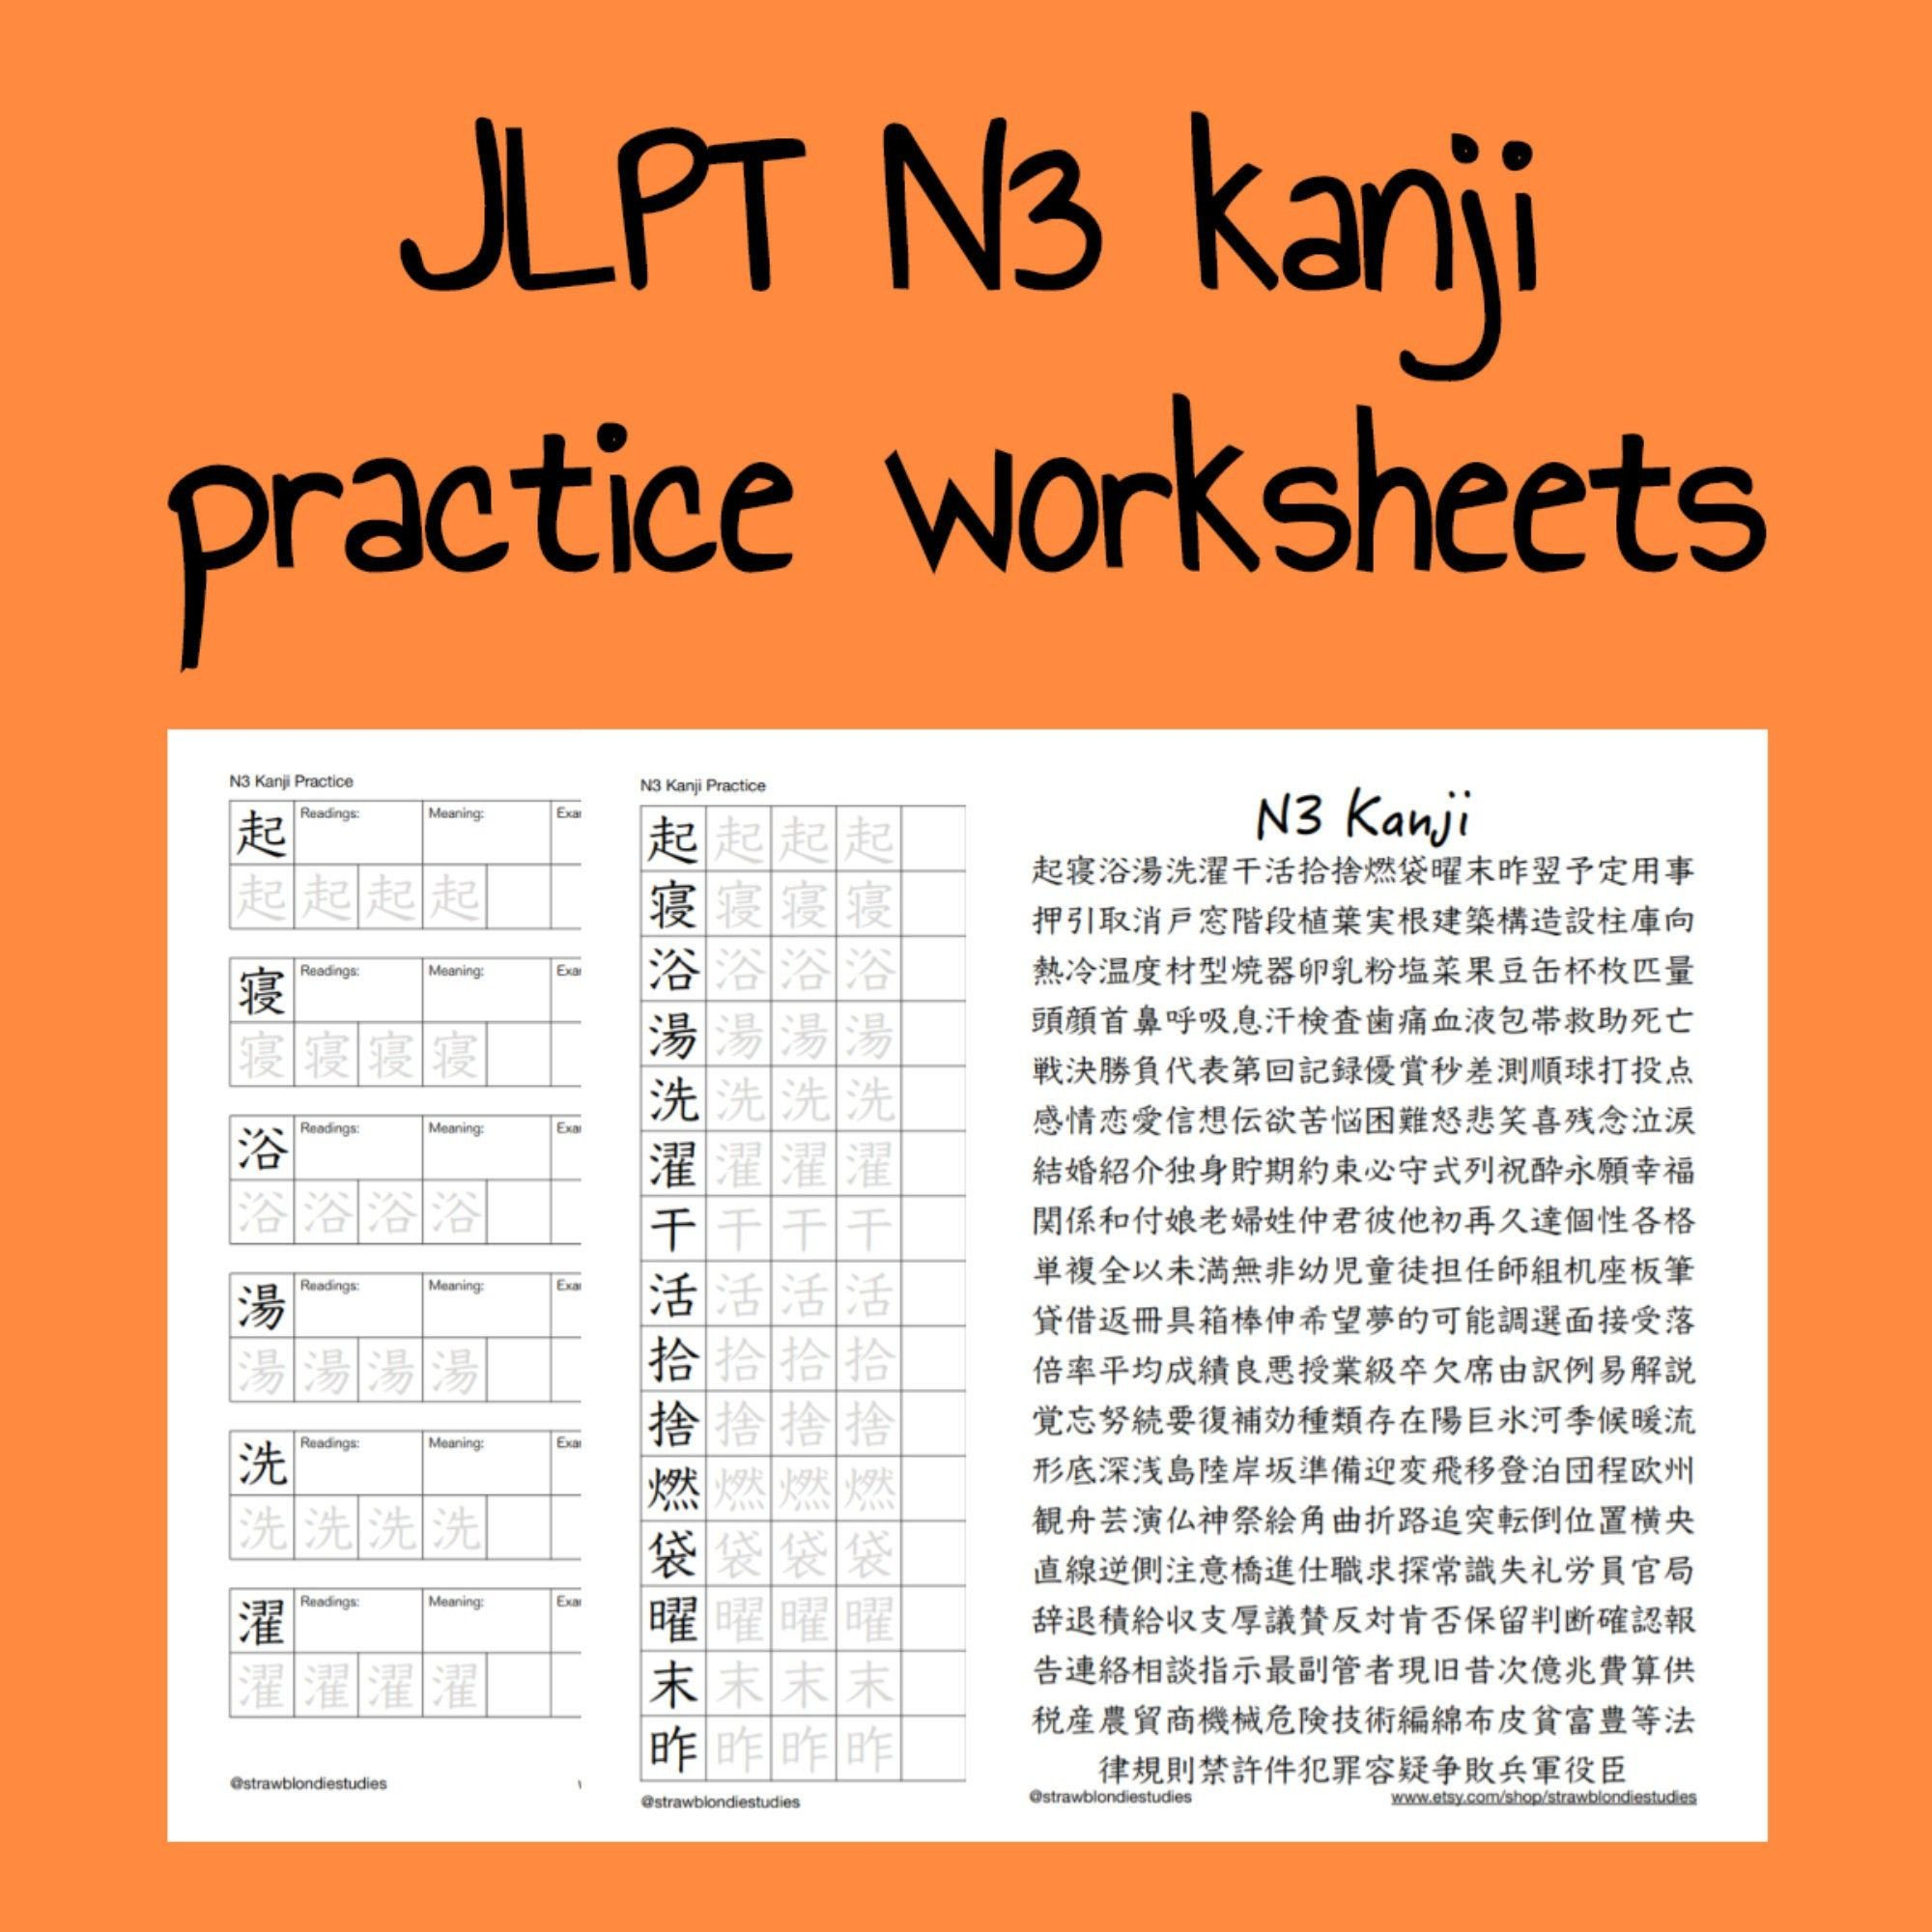 Japanese Worksheets Printable Jlpt N3 Kanji Printable Practice Worksheet Set Download In